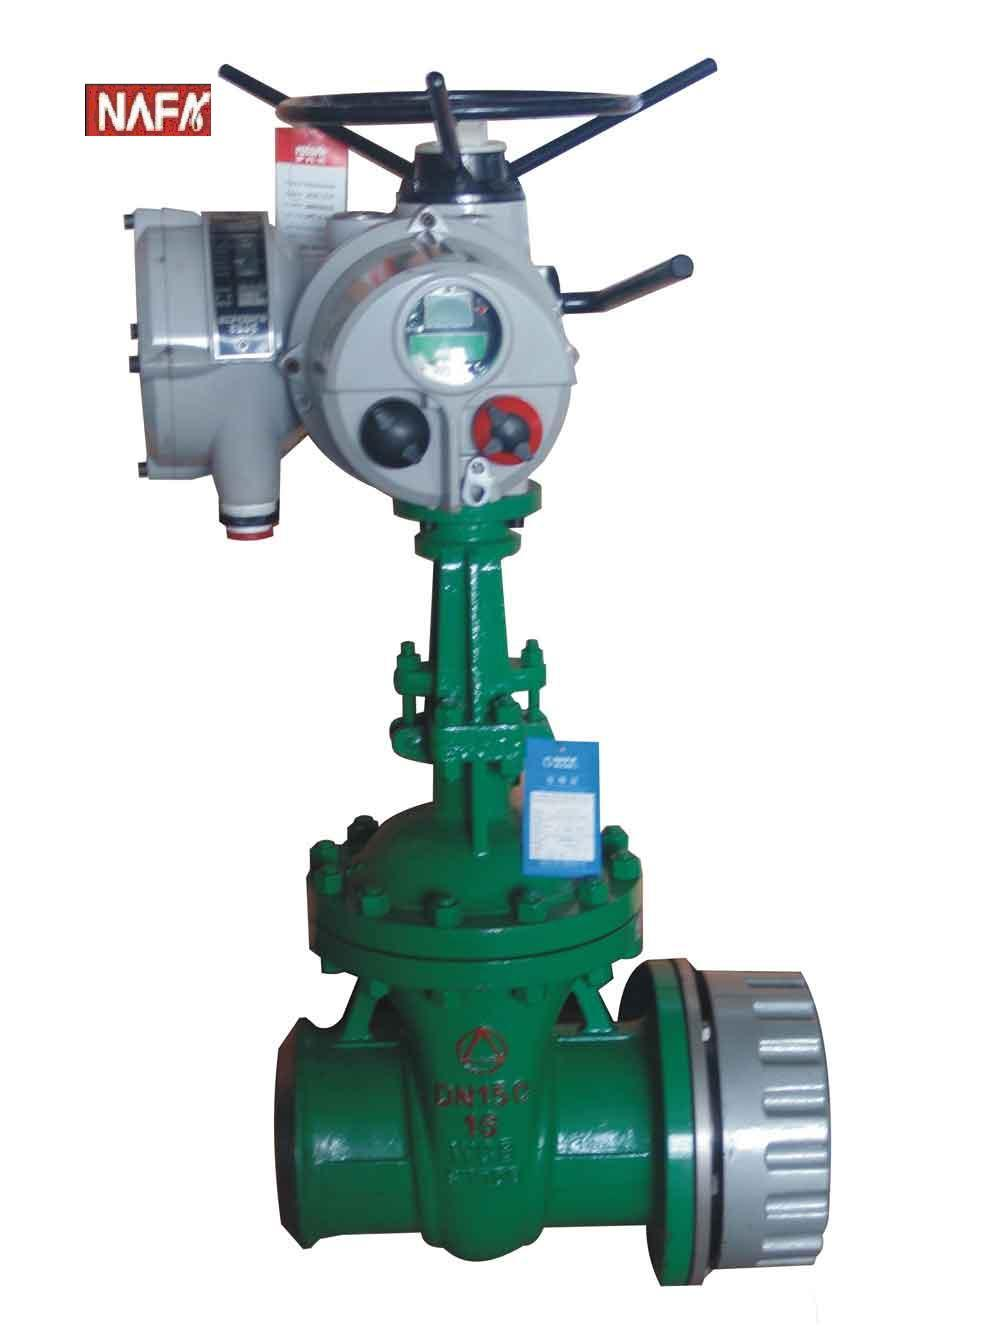 Water seal valve nf 011